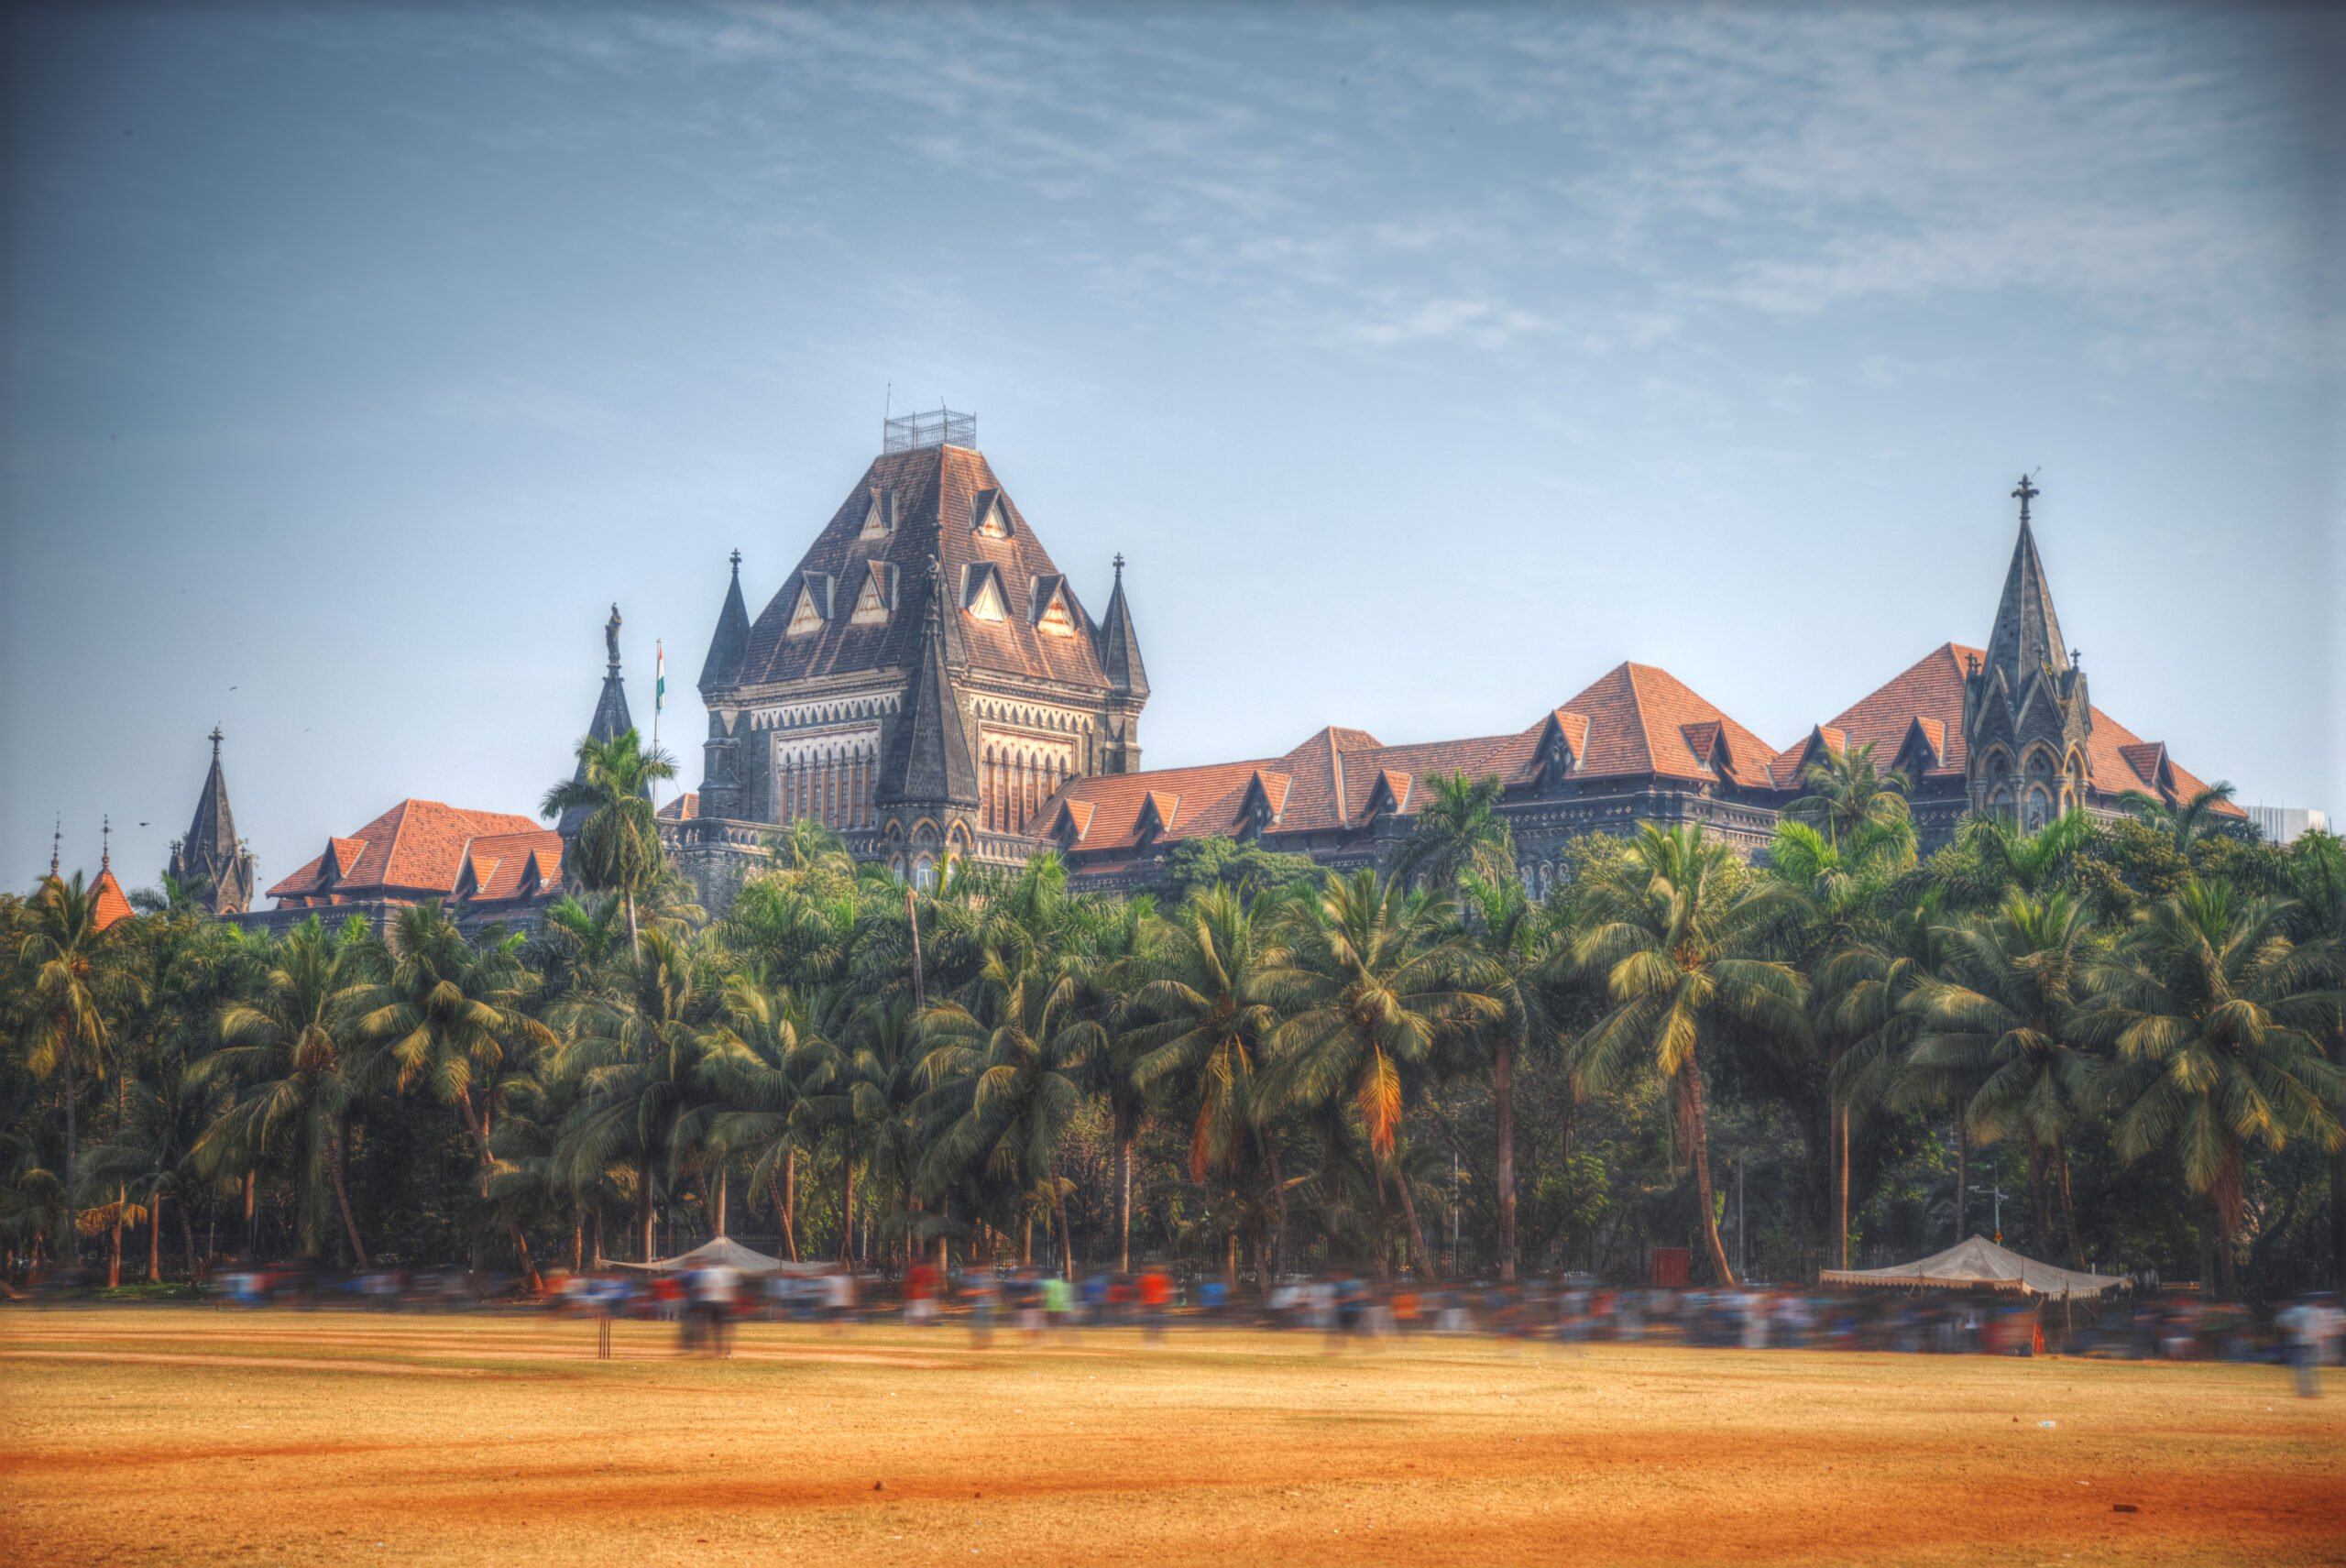 Visit Empress Court The Greatest Art Deco Residential Building In Mumbai In Our Mumbai's Gothic And Art Deco Tour